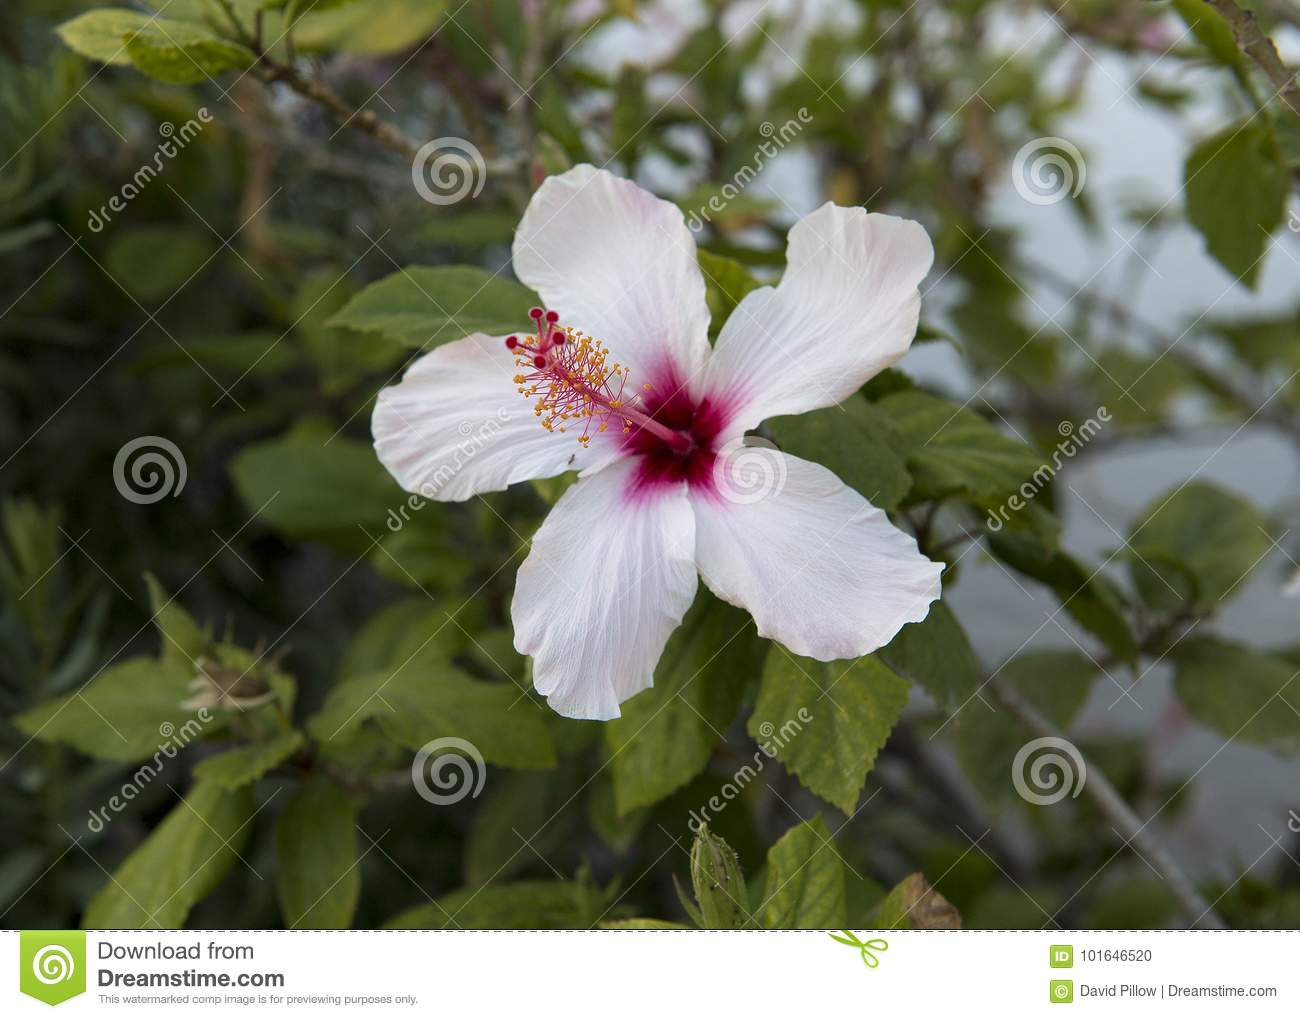 Closeup view of a single white hibiscus bloom stock photo image of download closeup view of a single white hibiscus bloom stock photo image of genus izmirmasajfo